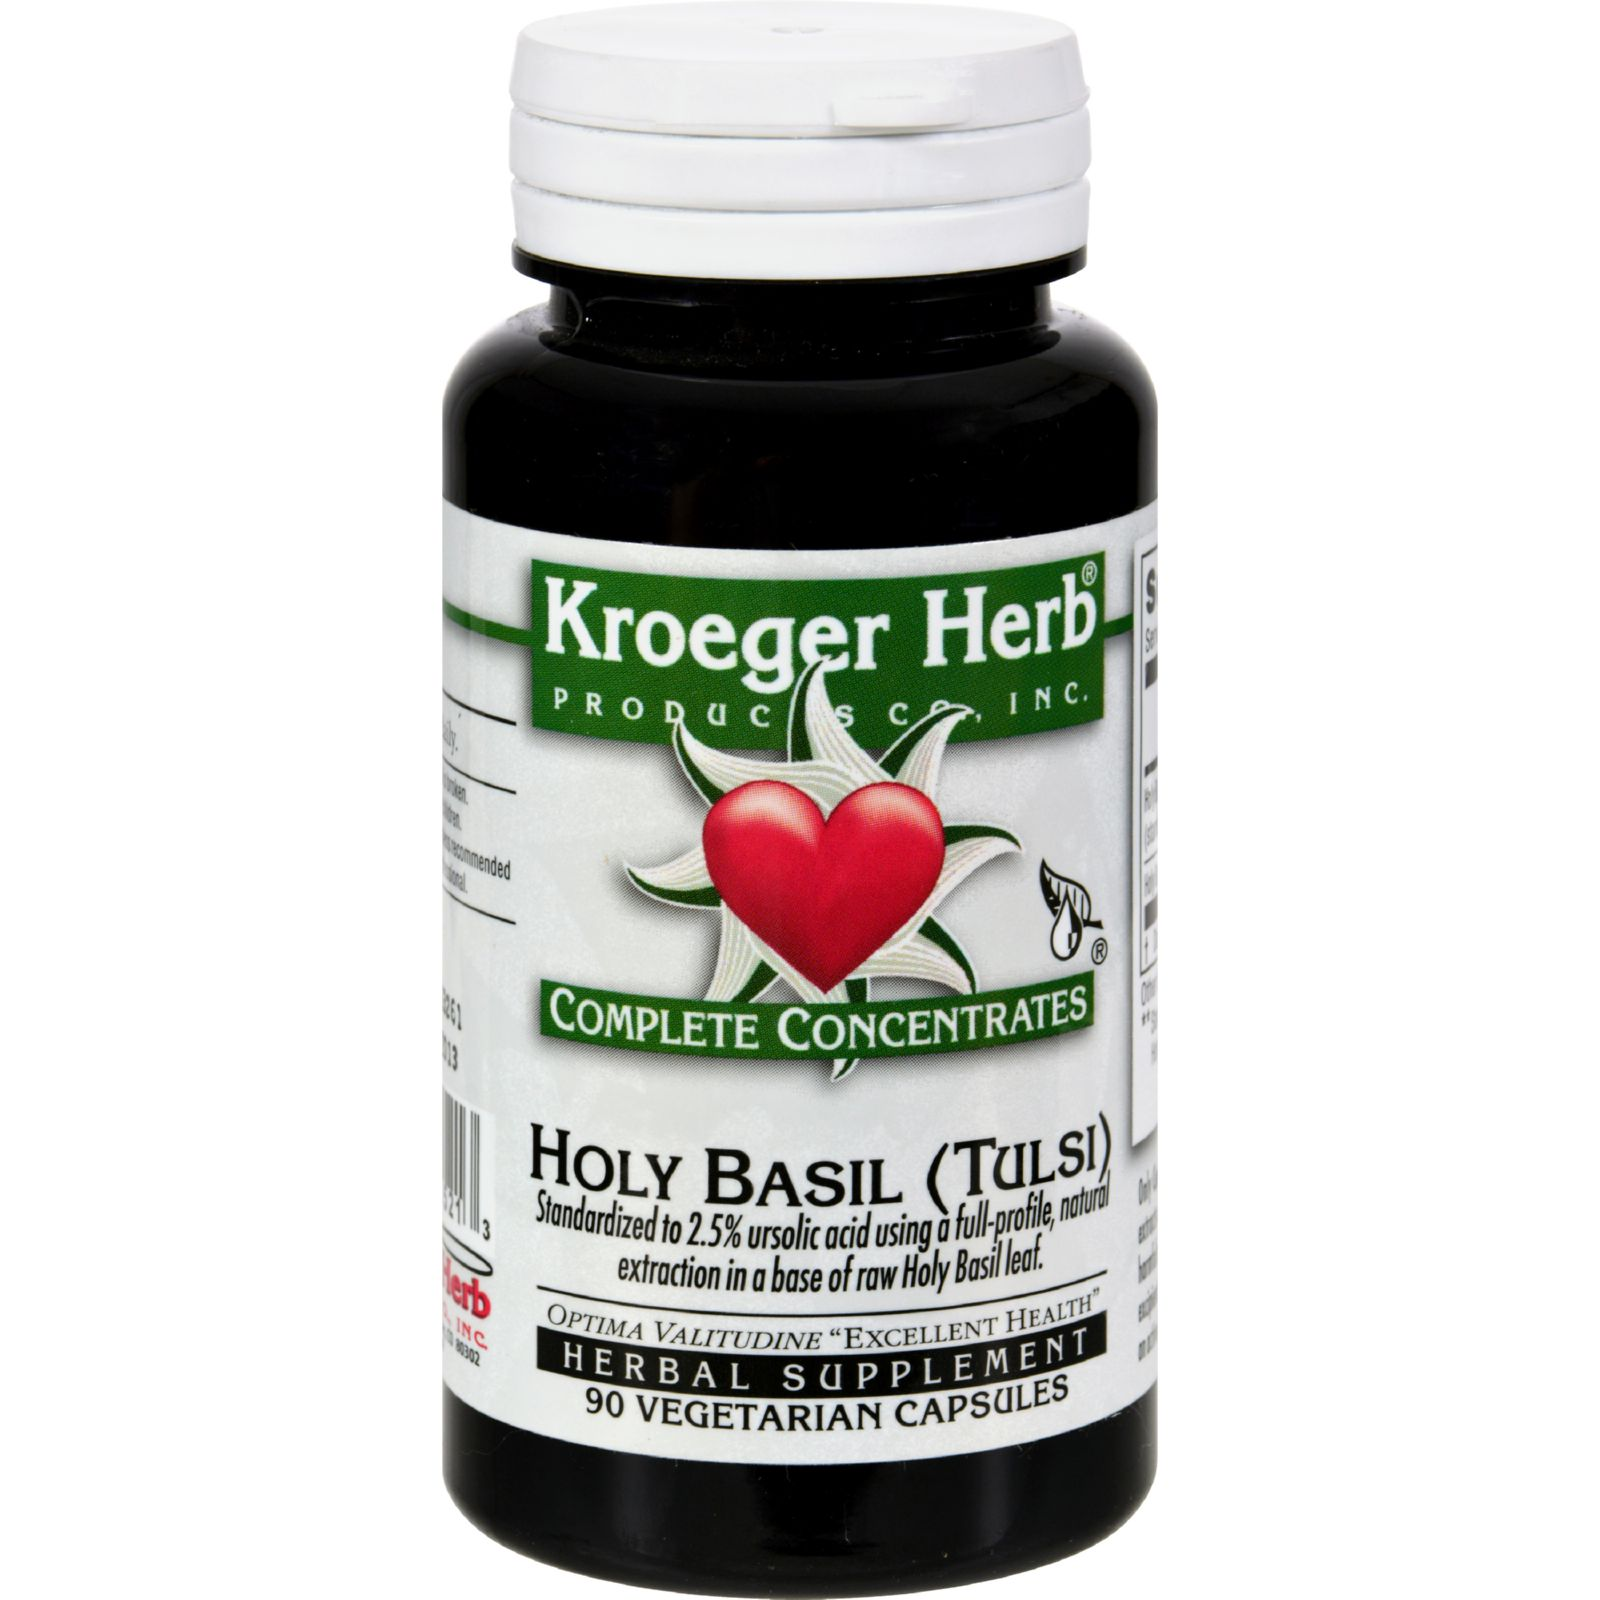 Kroeger Herb Holy Basil - Complete Concentrate - 90 Vegetarian Capsules